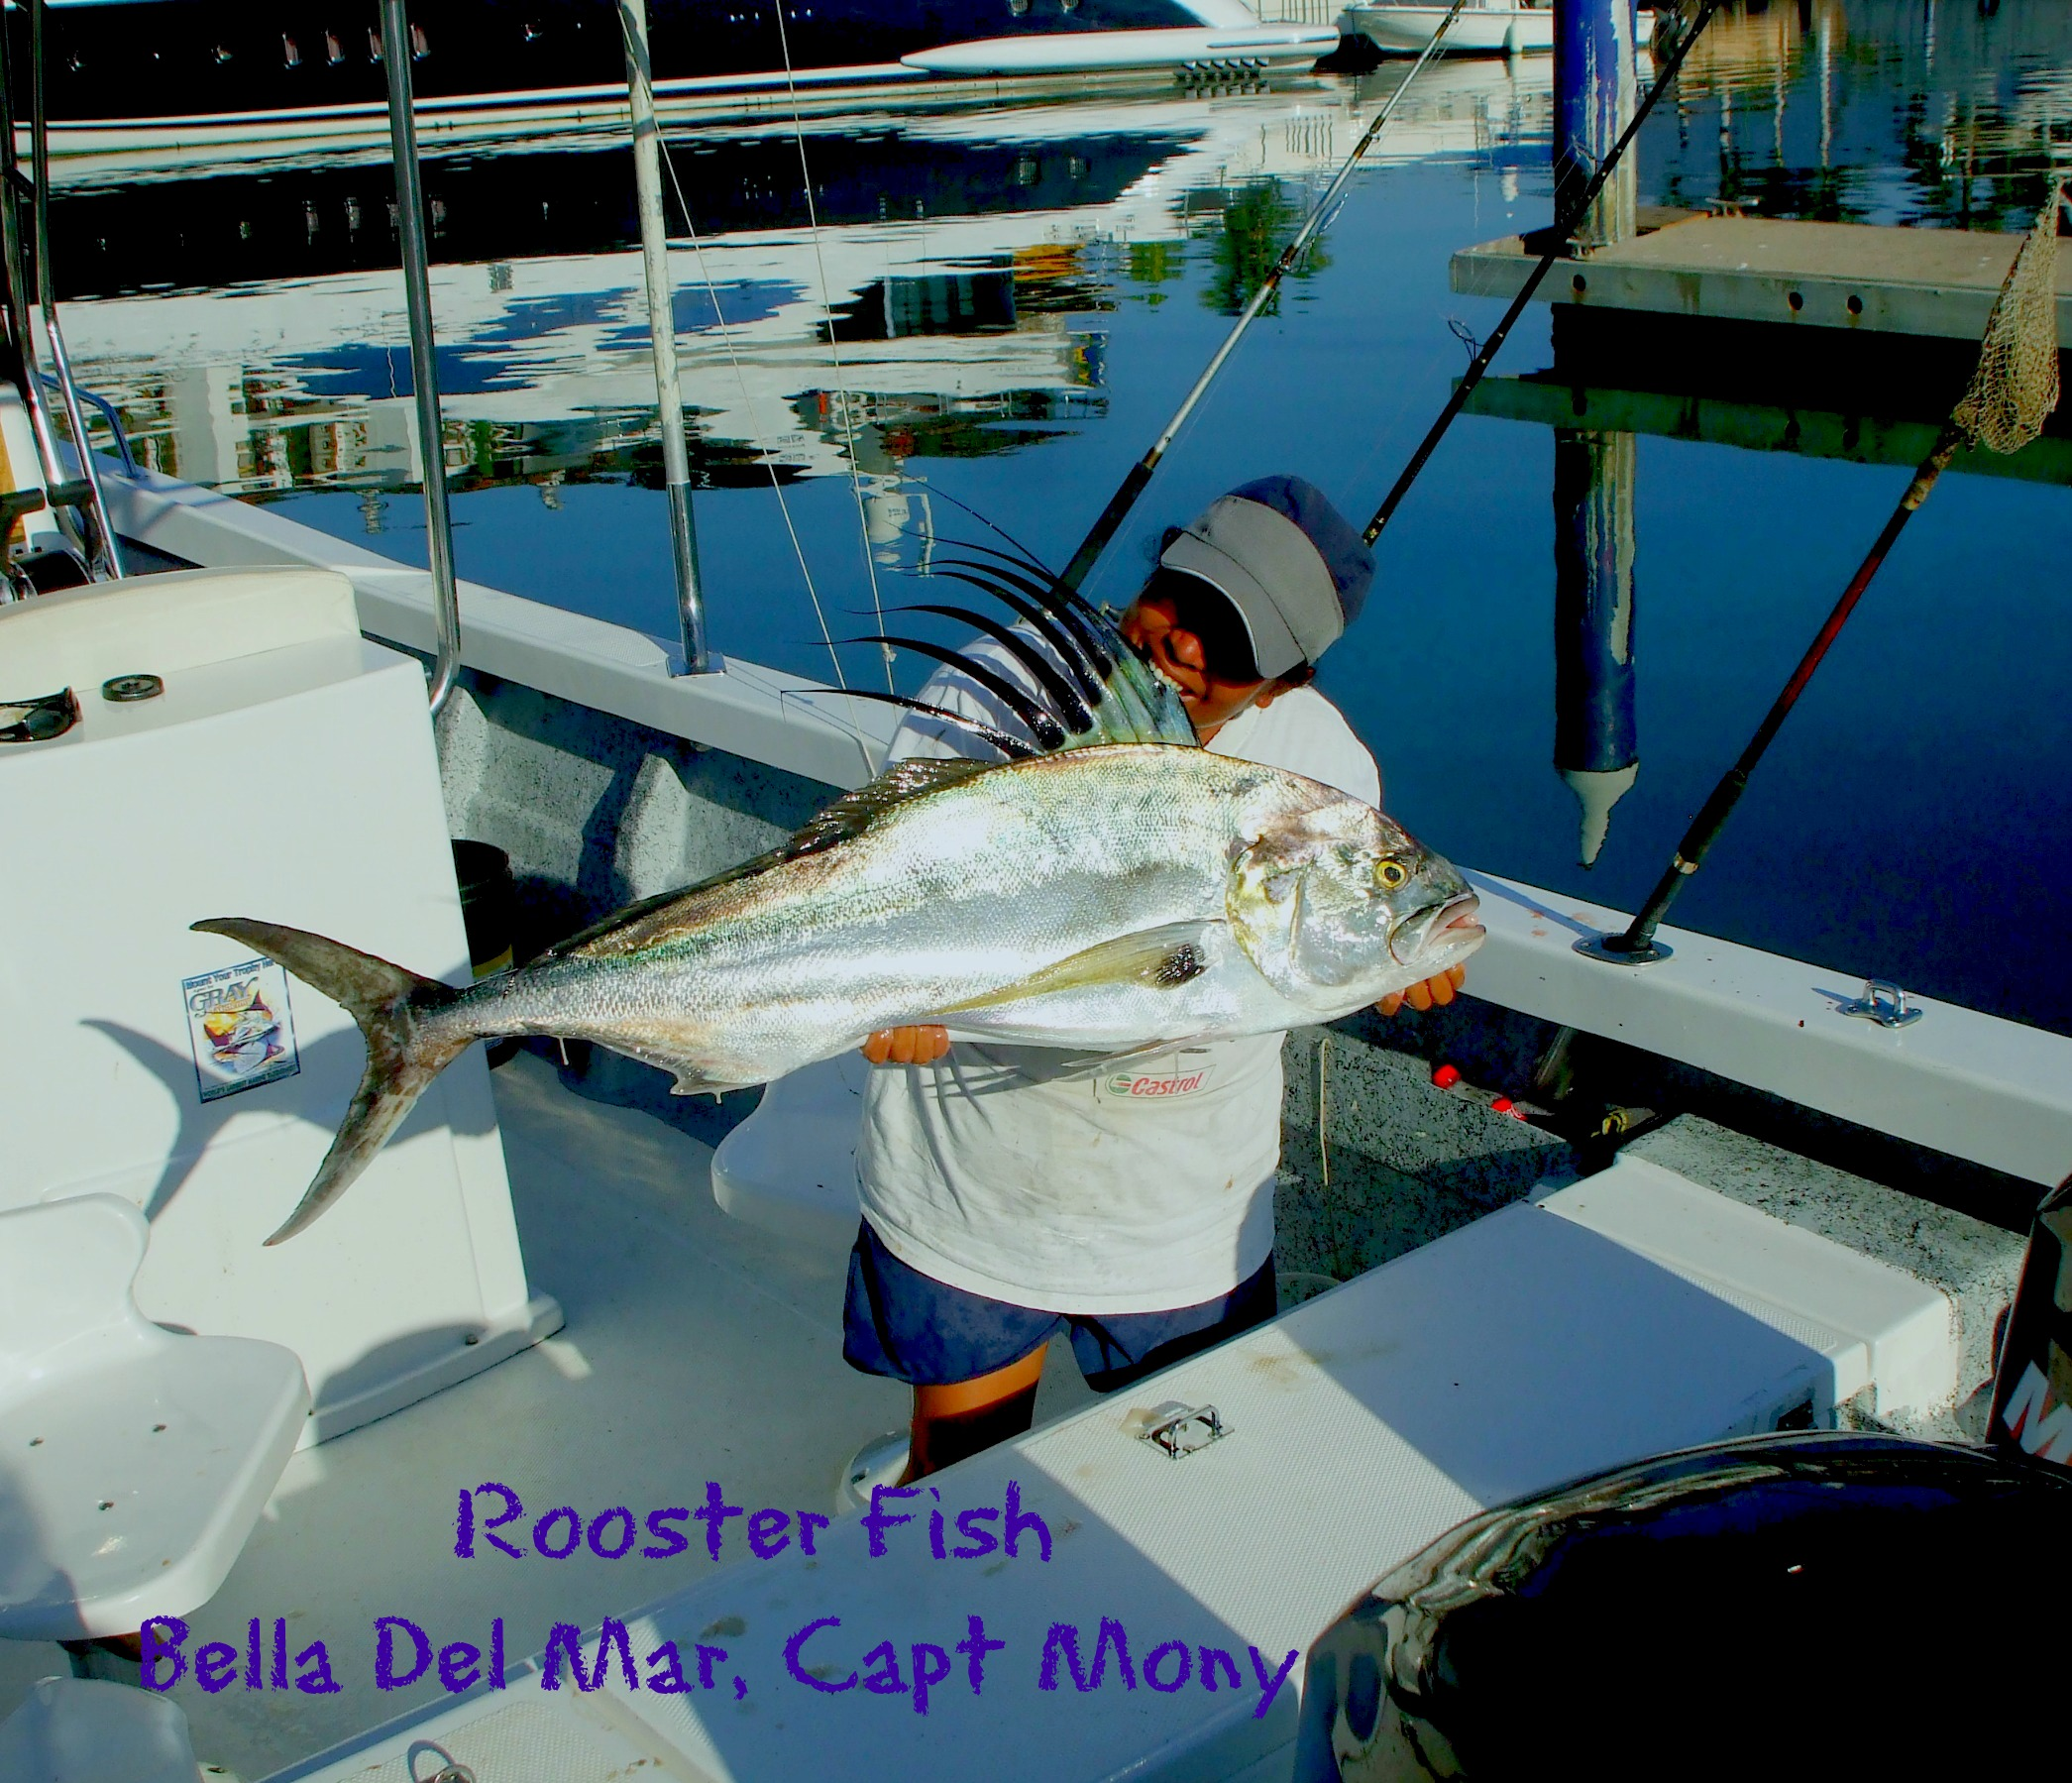 03 26 2014 Rooster Fish, Bela Del Mar, 8 hrs, Full size